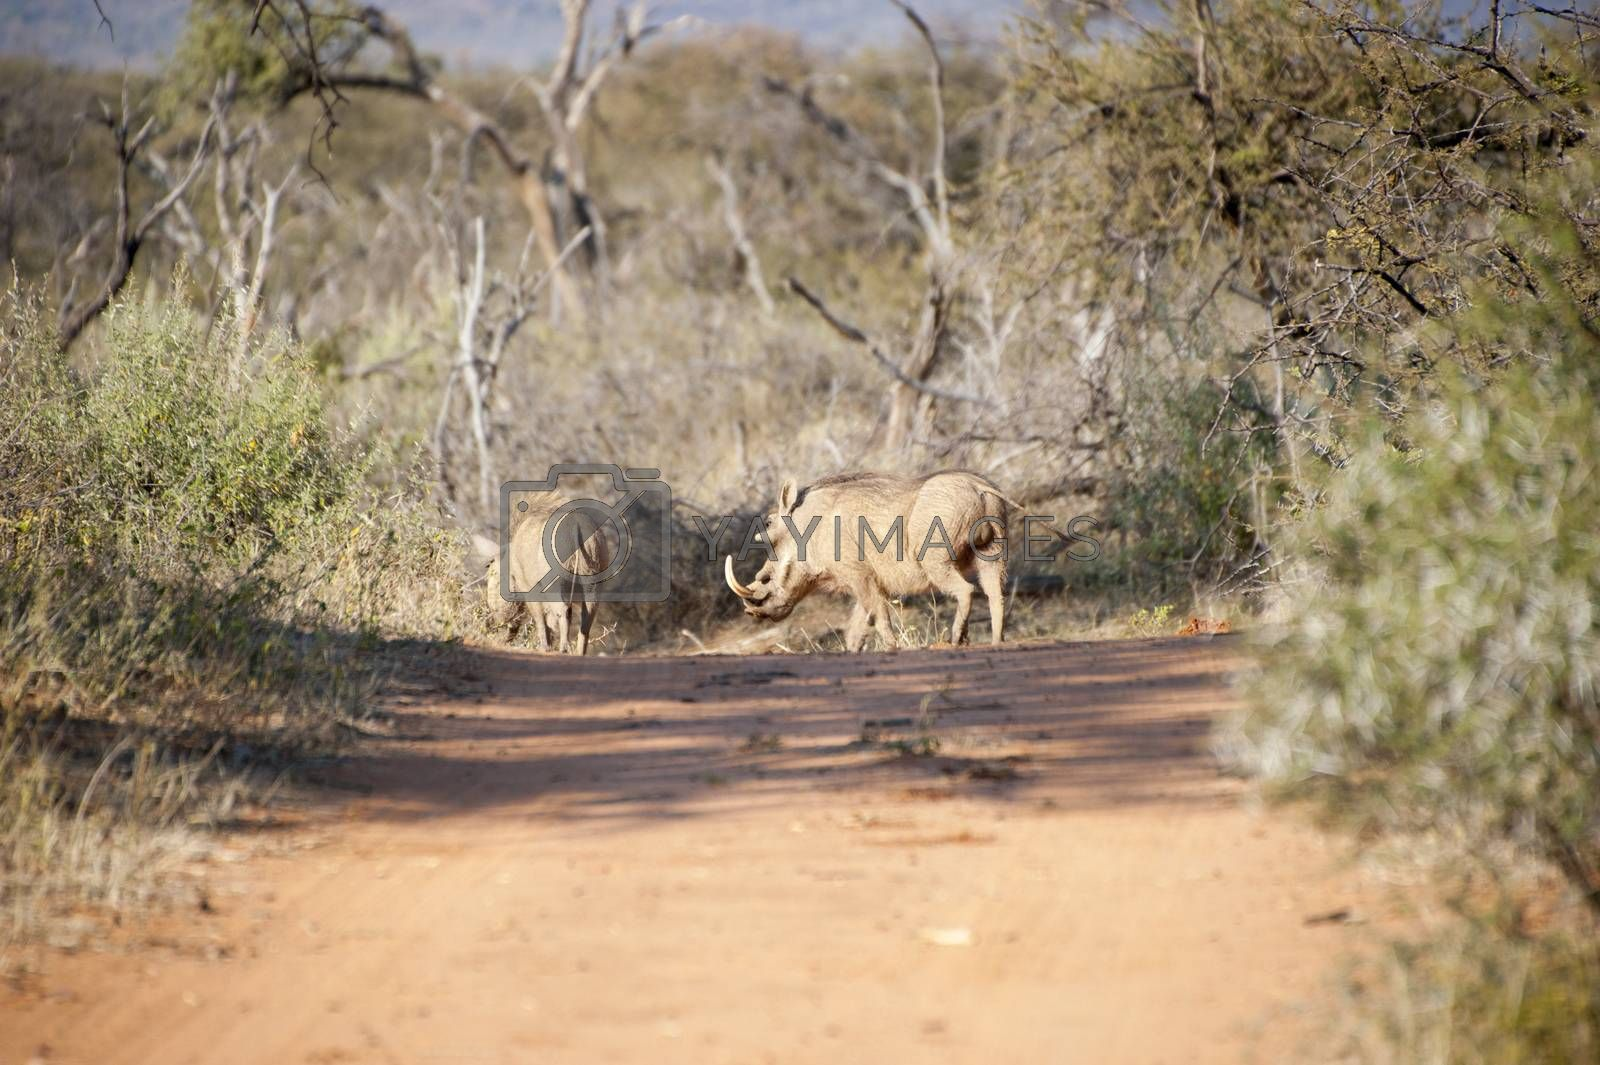 Family of warthogs walking across the sand road in Kruger National Park, South Africa